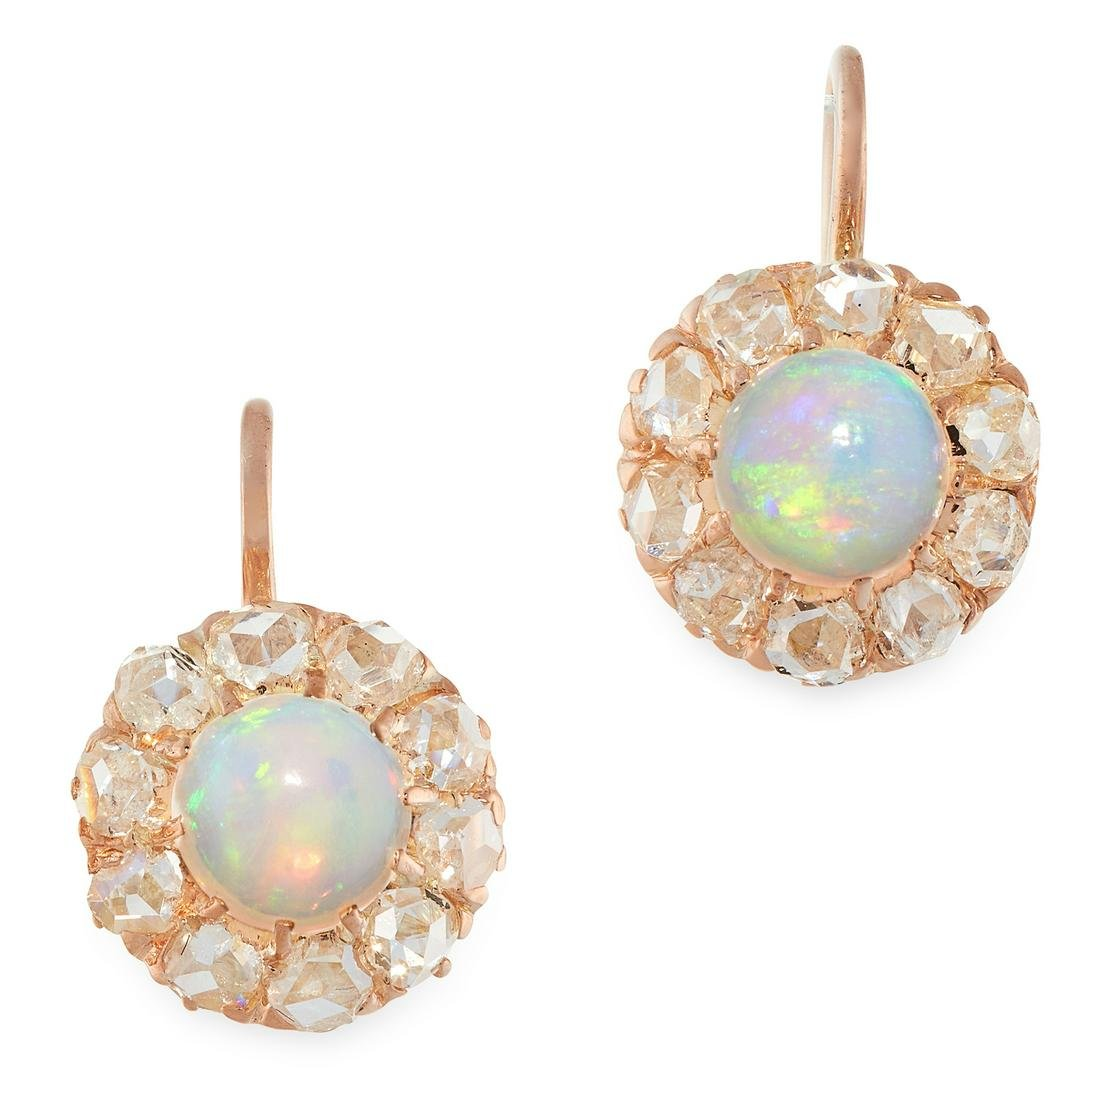 A PAIR OF OPAL AND DIAMOND CLUSTER EARRINGS set with a